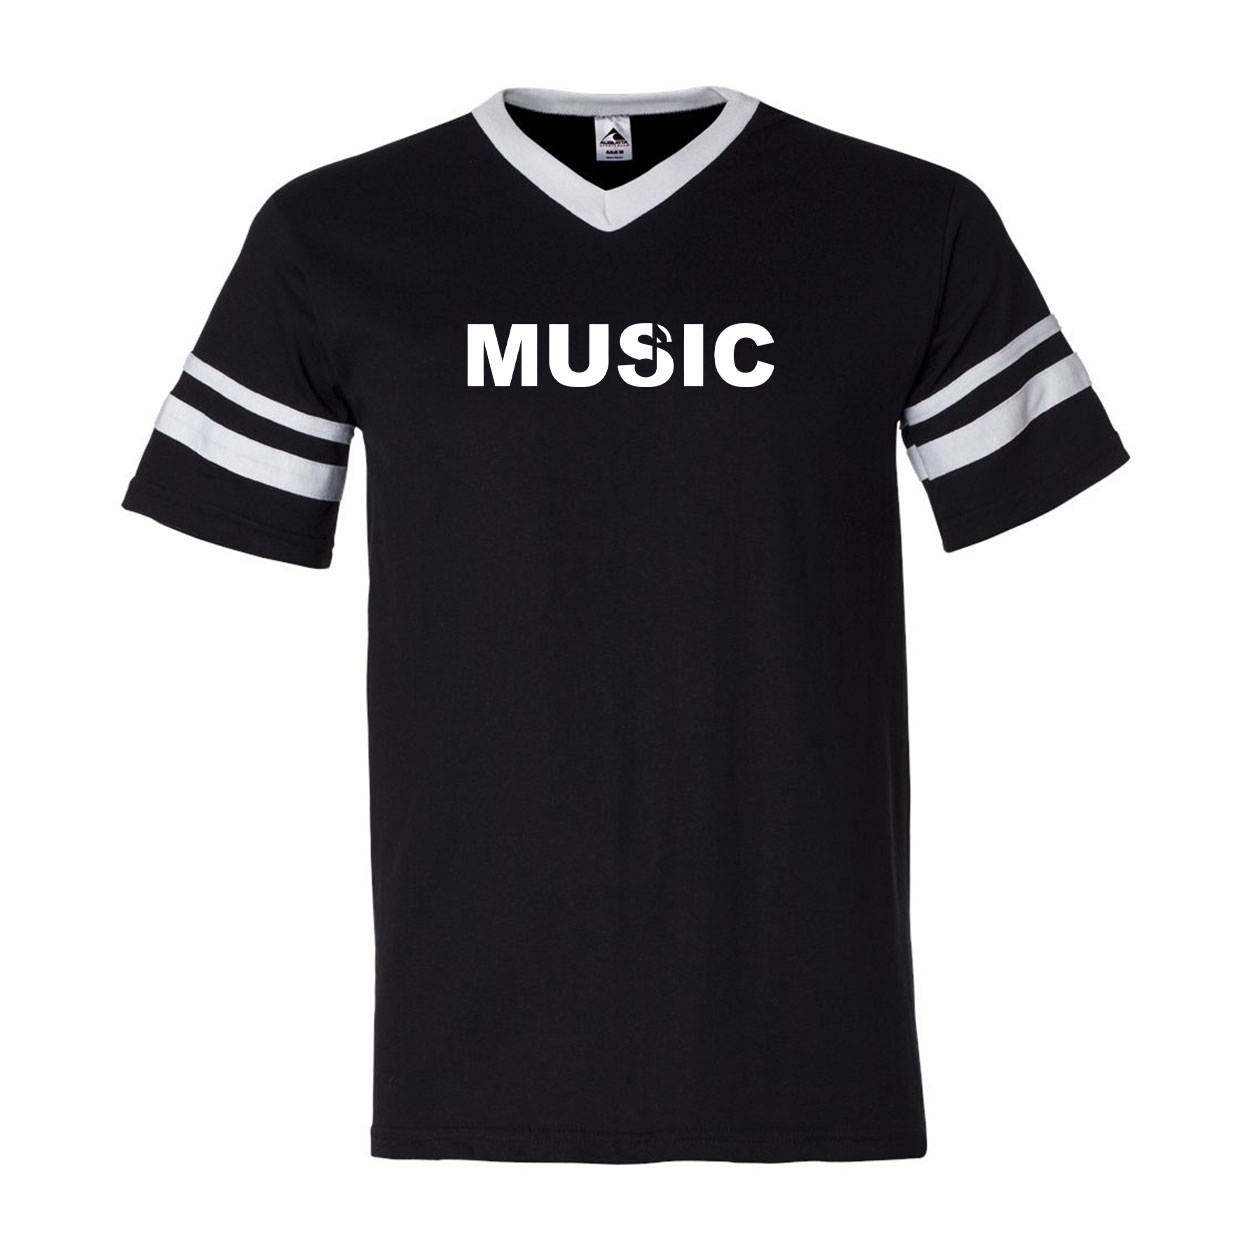 Music Note Logo Classic Premium Striped Jersey T-Shirt Black/White (White Logo)